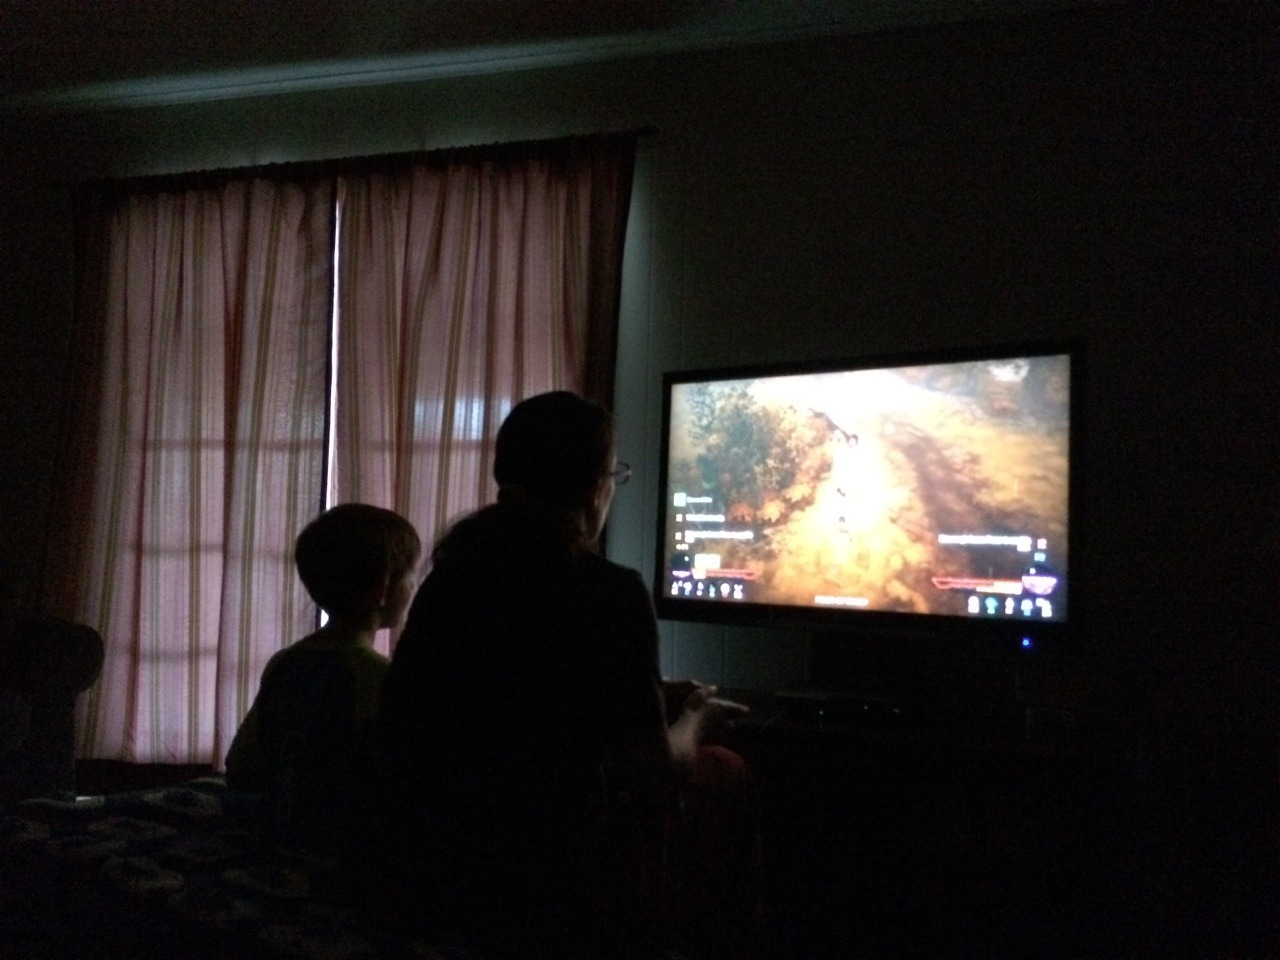 My wife is playing Diablo with our son. She is such a good mommy.